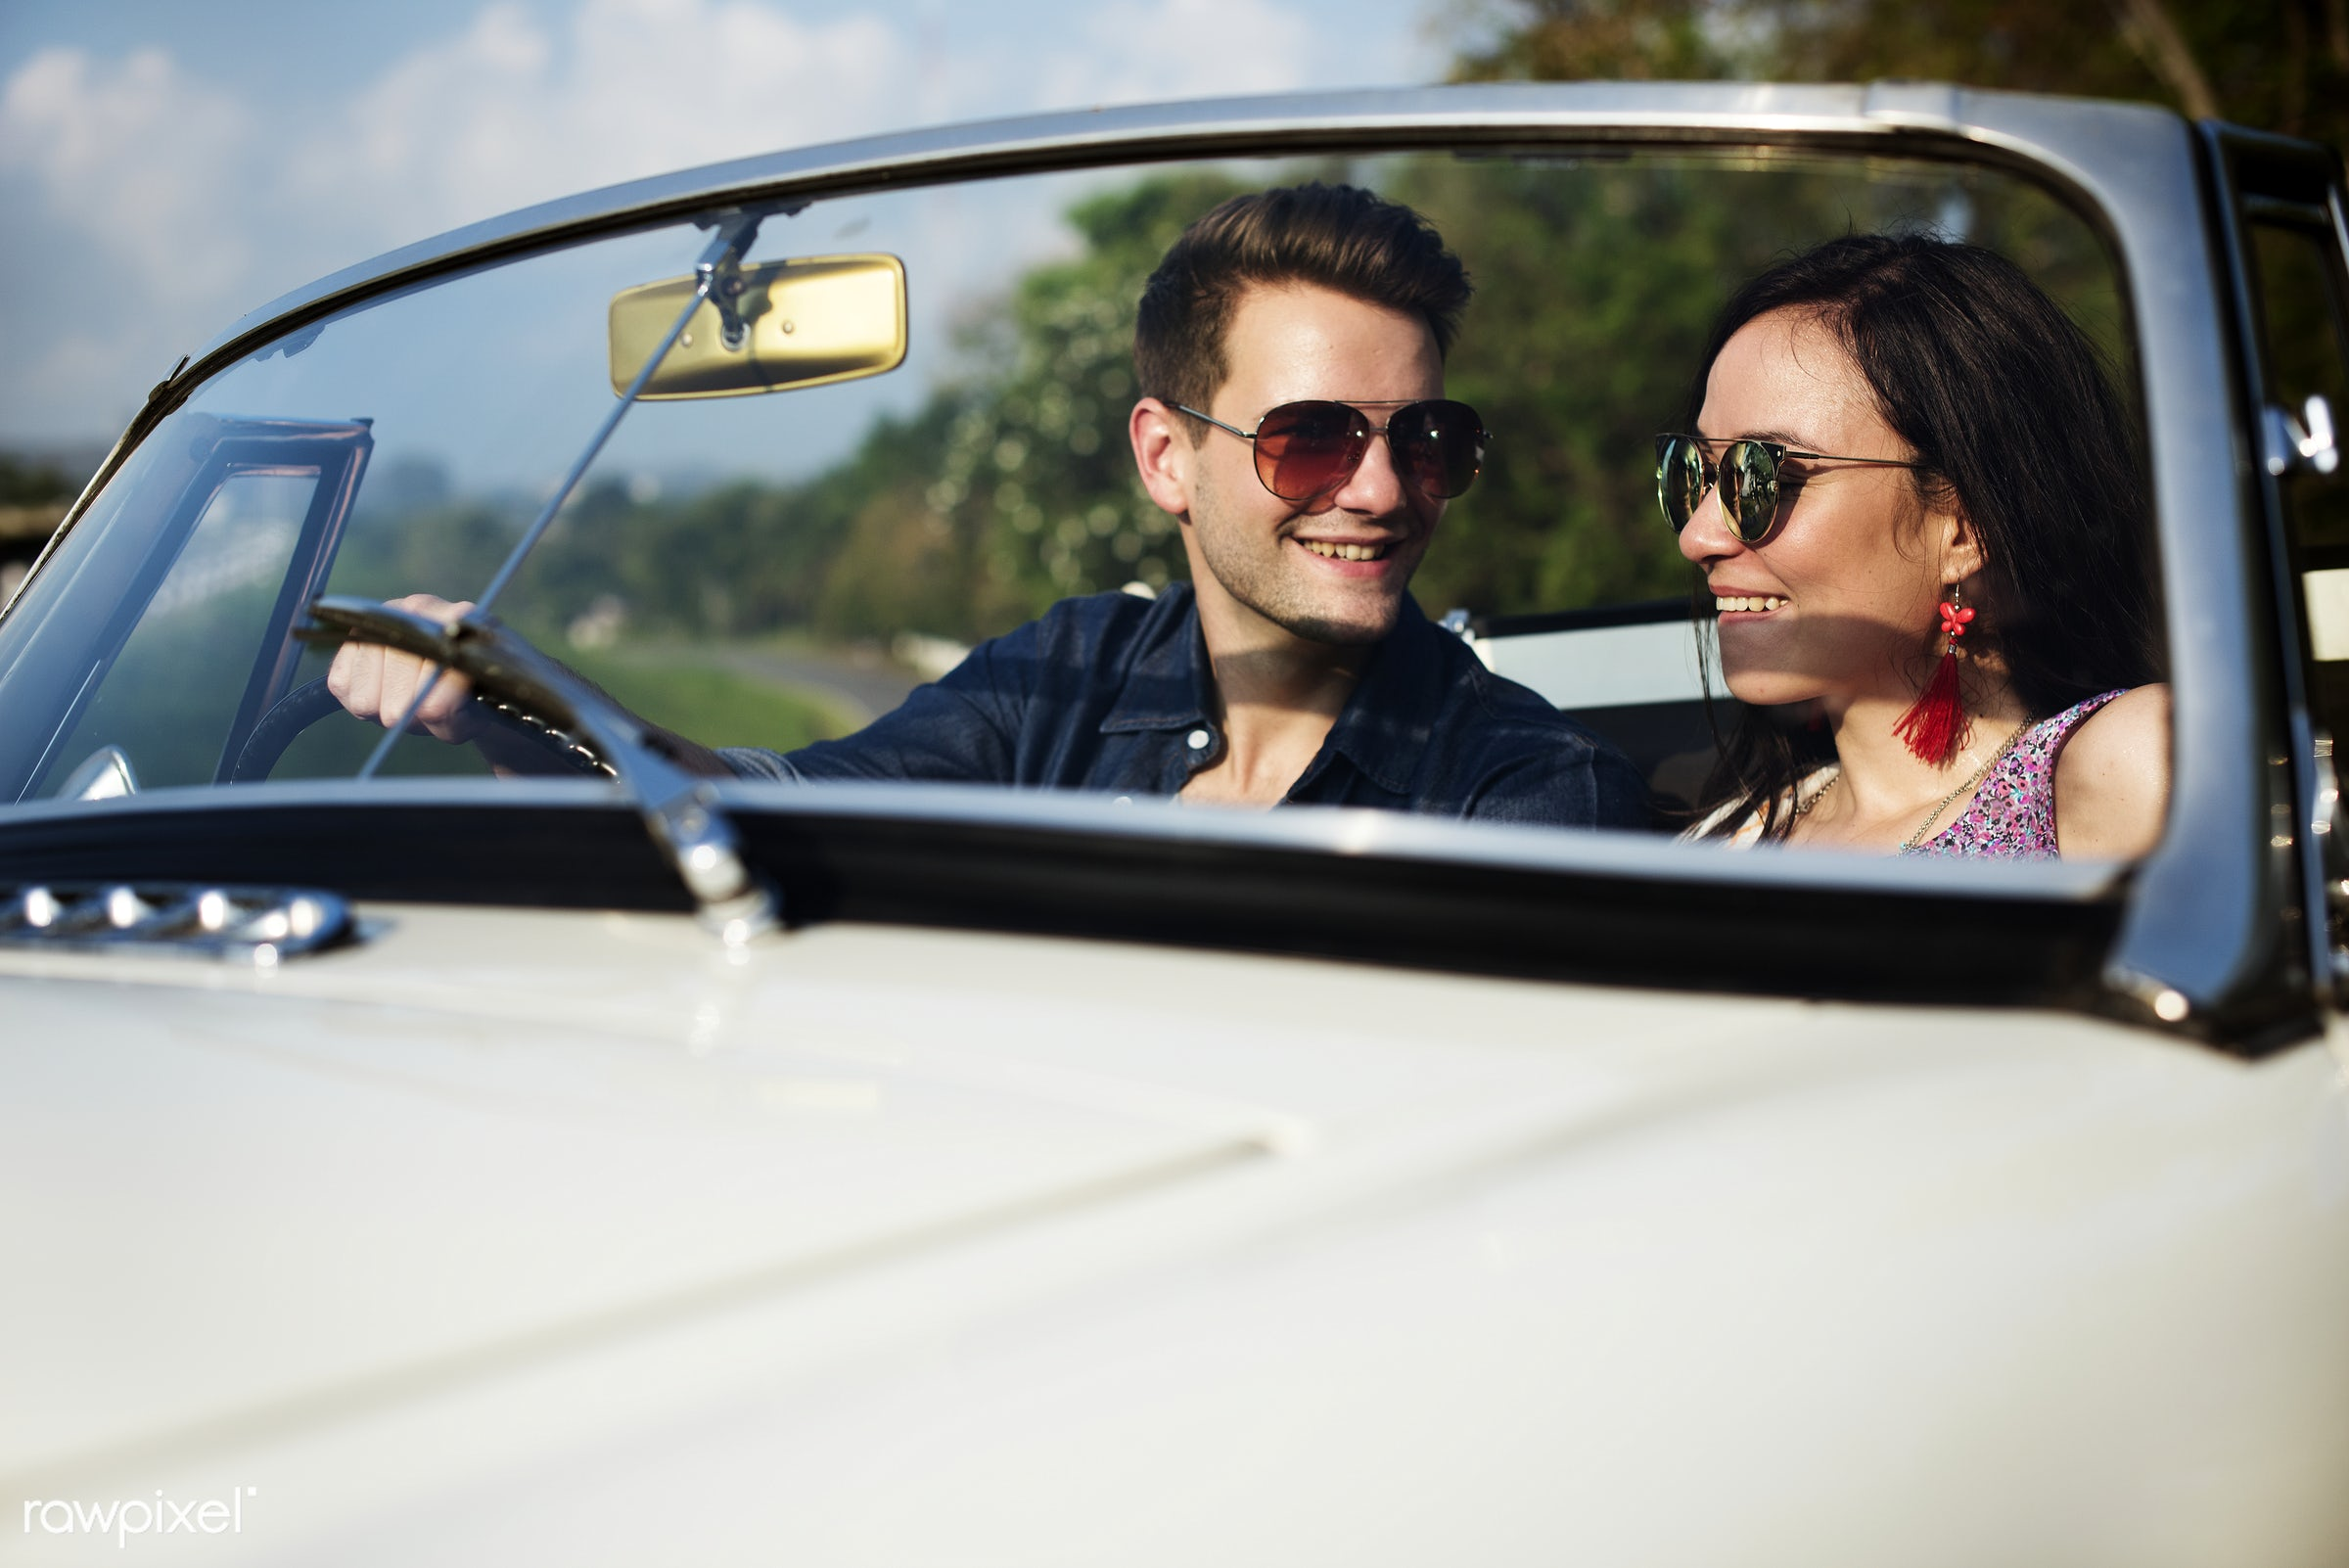 Diverse group of people enjoying a road trip and festival - life, adult, adventure, attractive, car, couple, drive, driving...